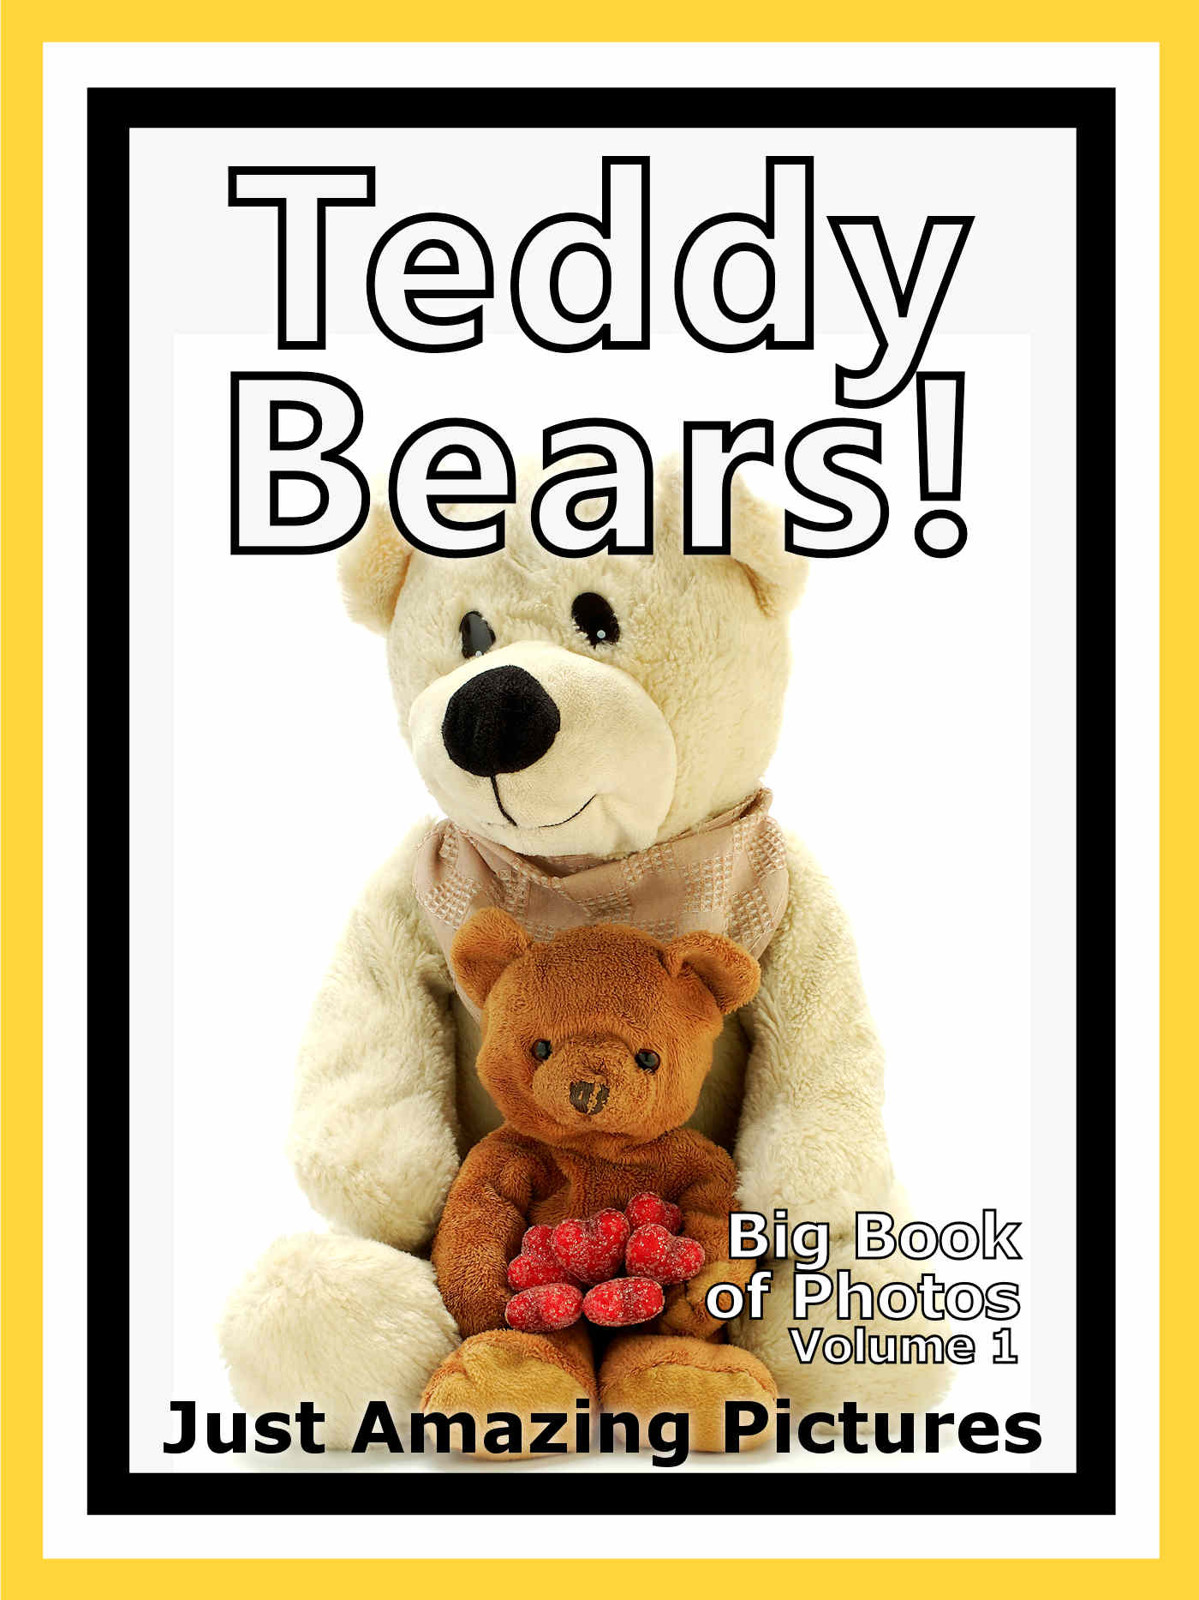 Just Teddy Bear Photos! Big Book of Photographs & Pictures of Teddy Bears, Vol. 1